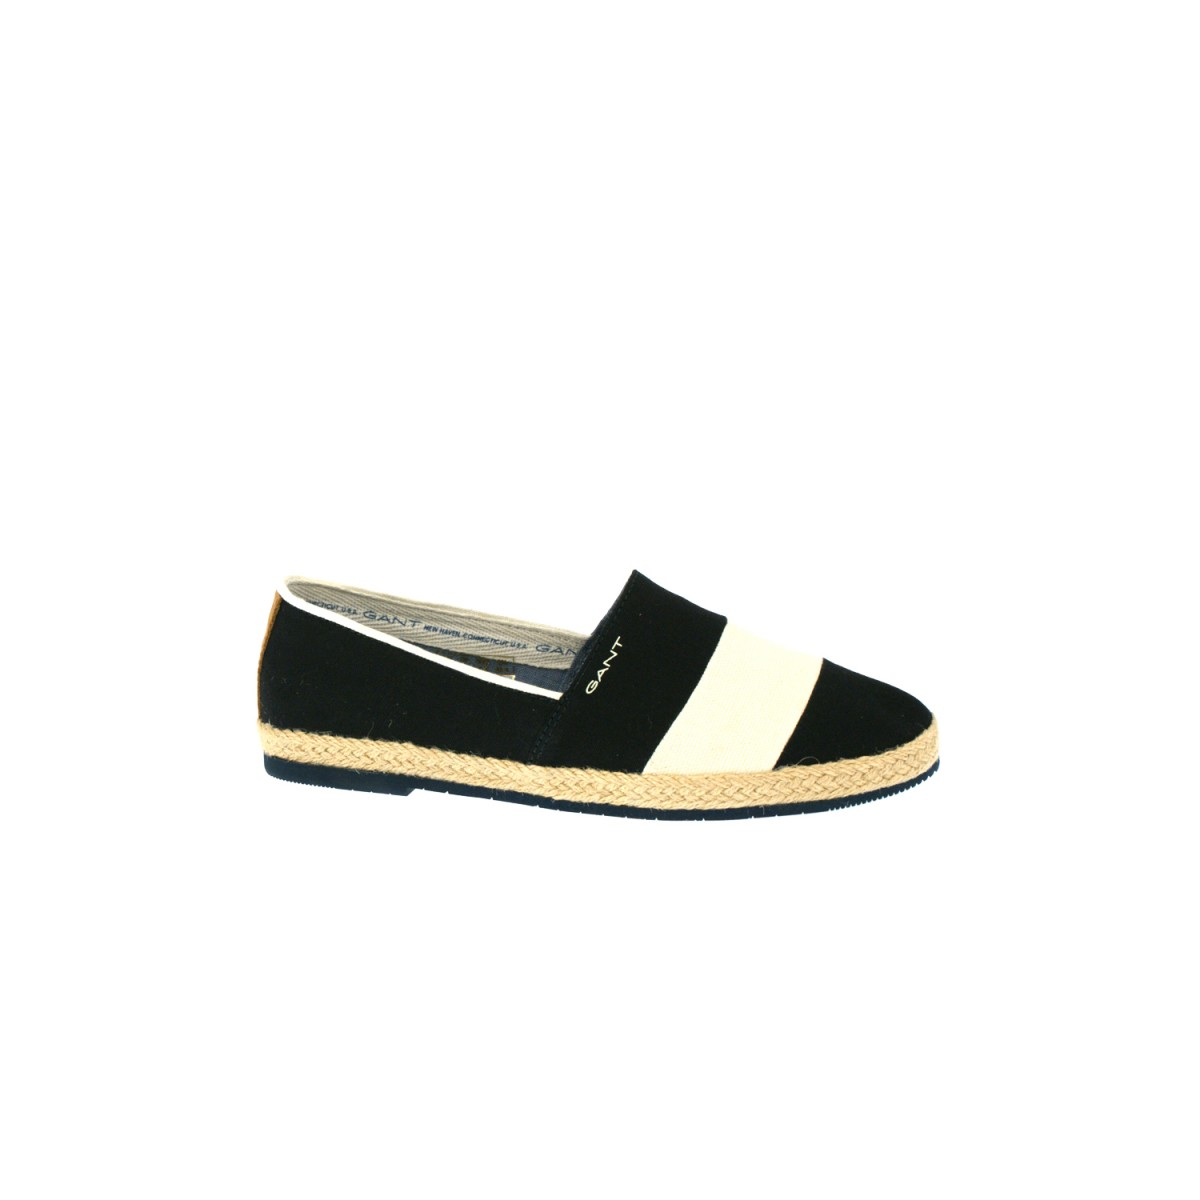 Gant Gina Block Cream/Navy Blue-35